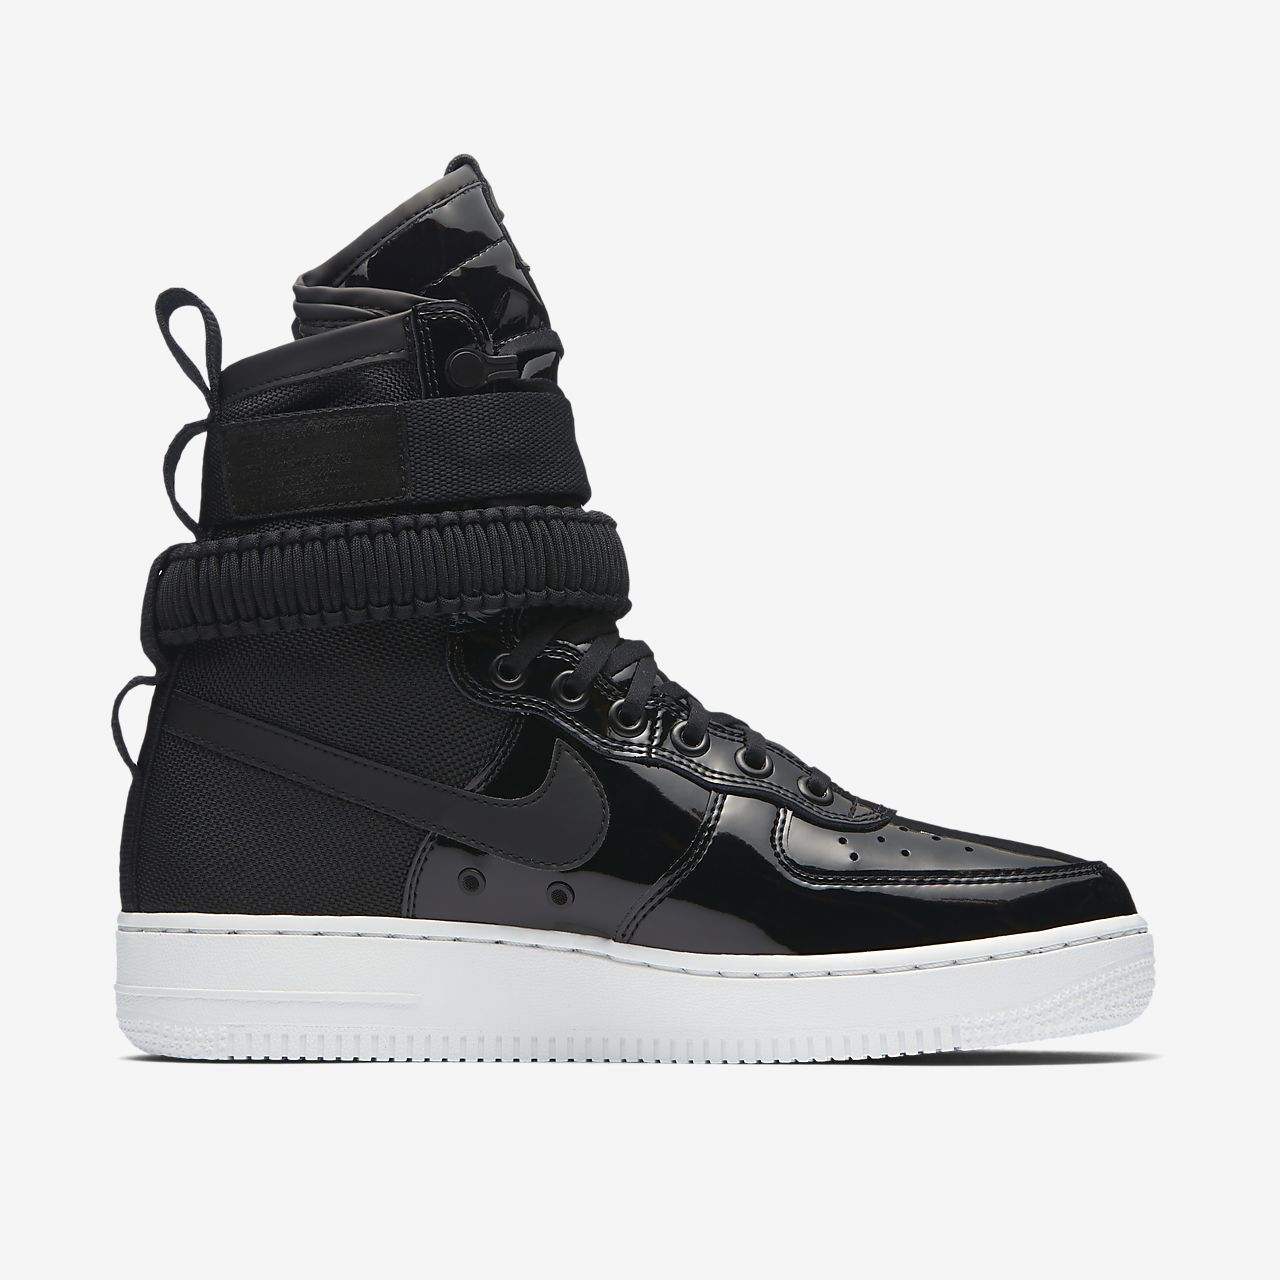 nike air force 1 high black women's nz